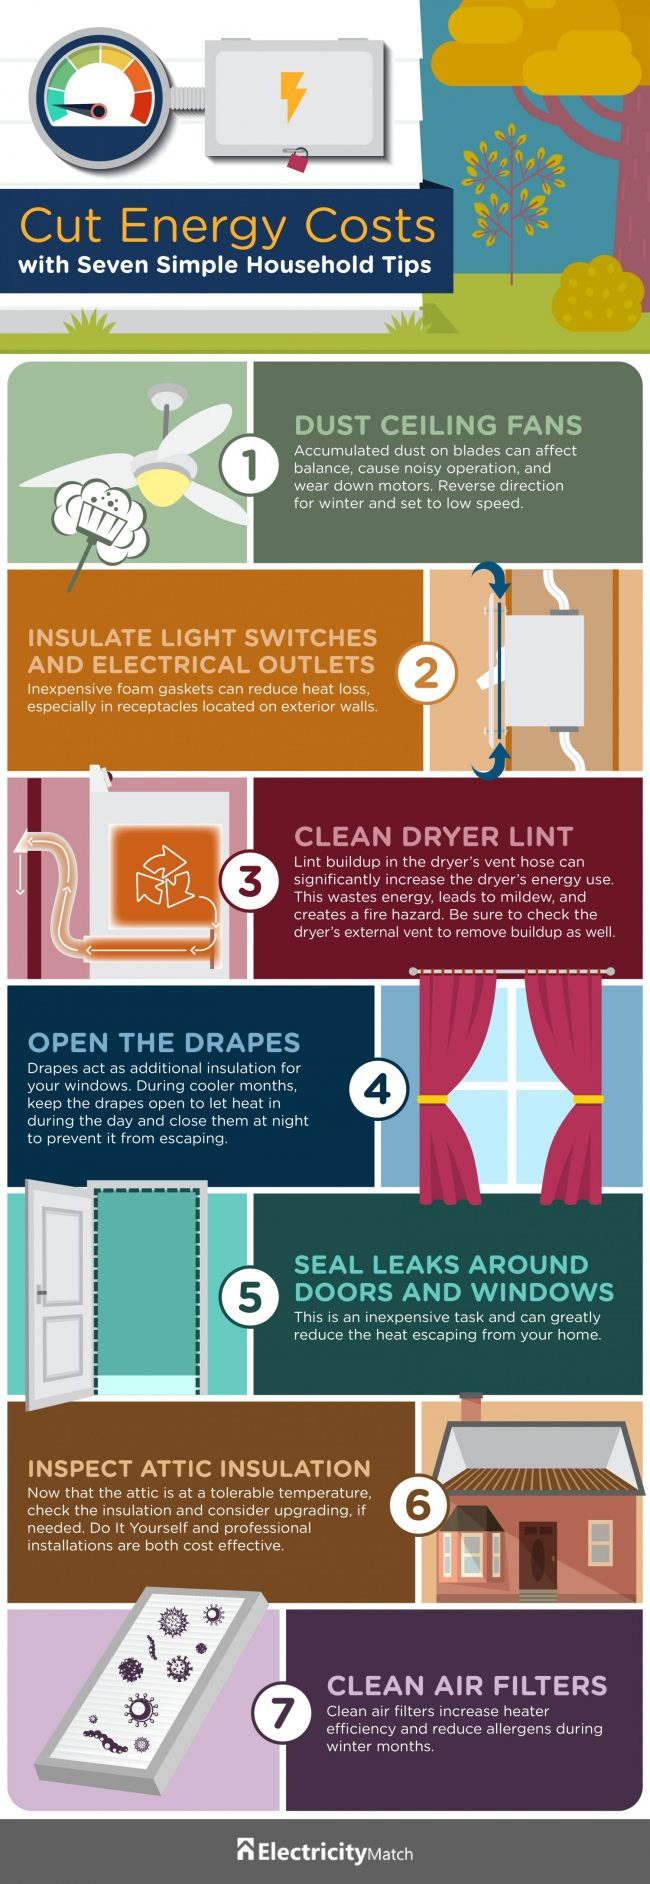 Fall Energy Savings Tips